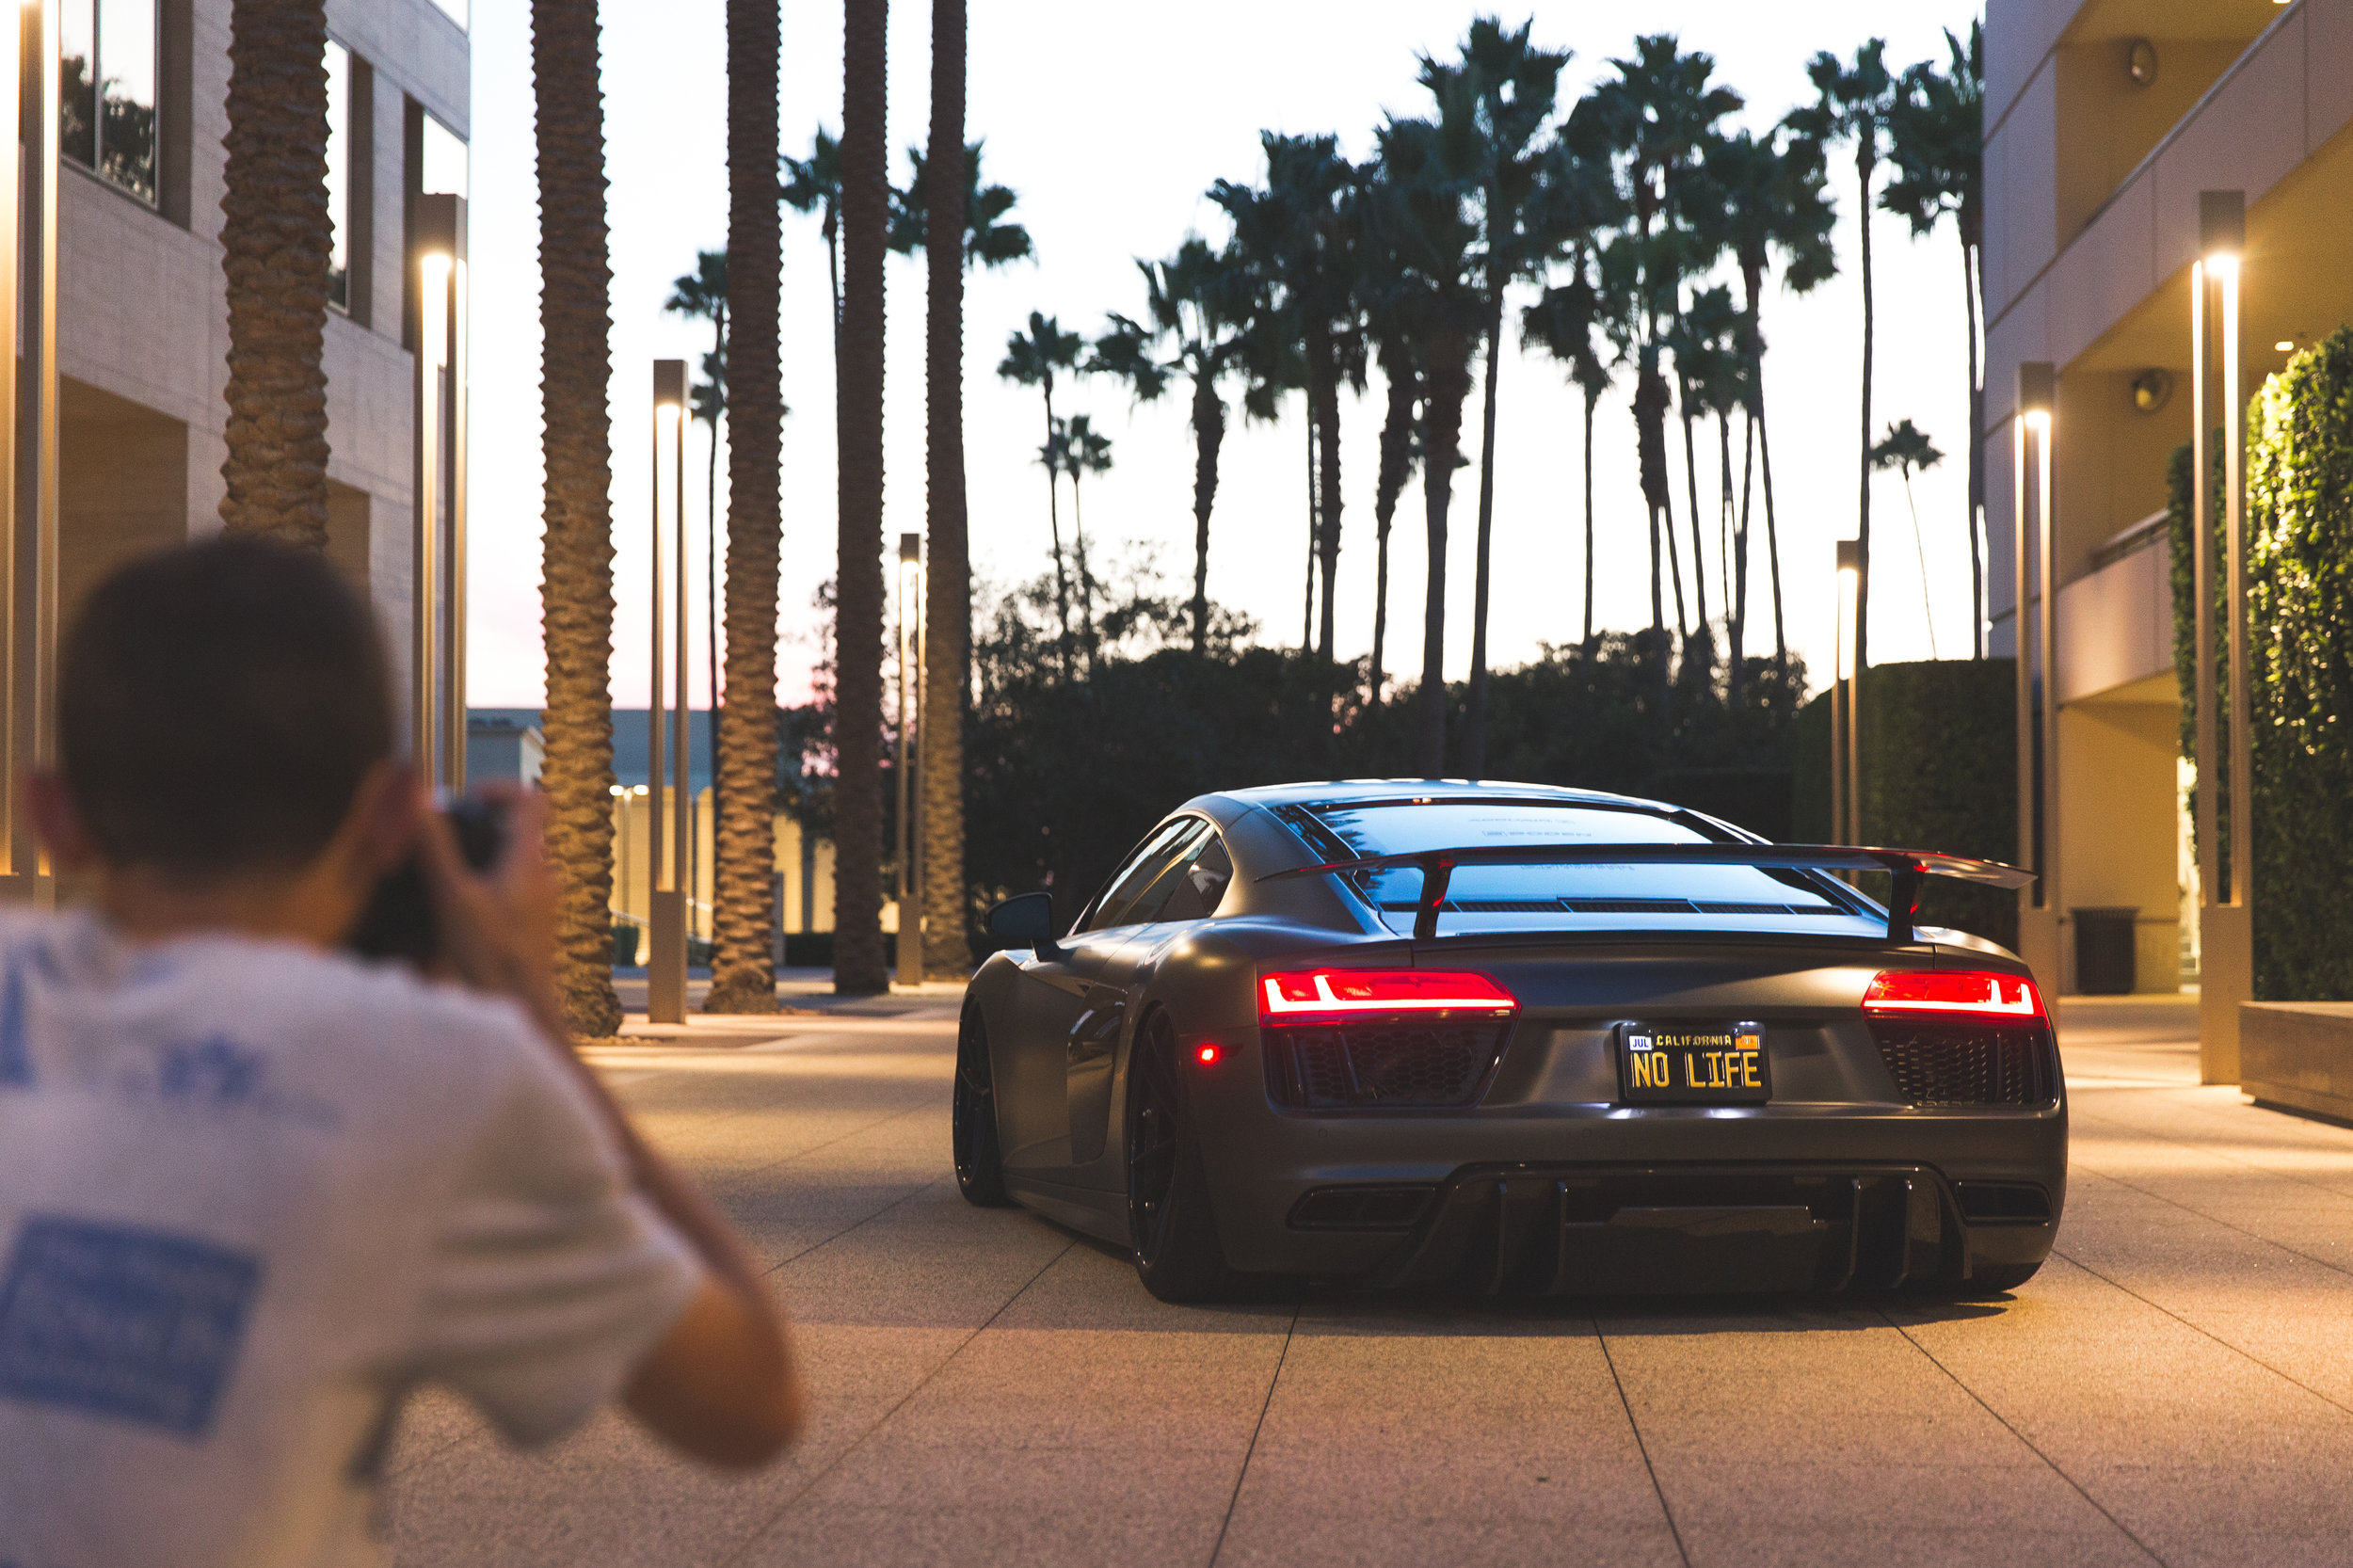 Stay_Driven_Page_R8_Newport-32.jpg